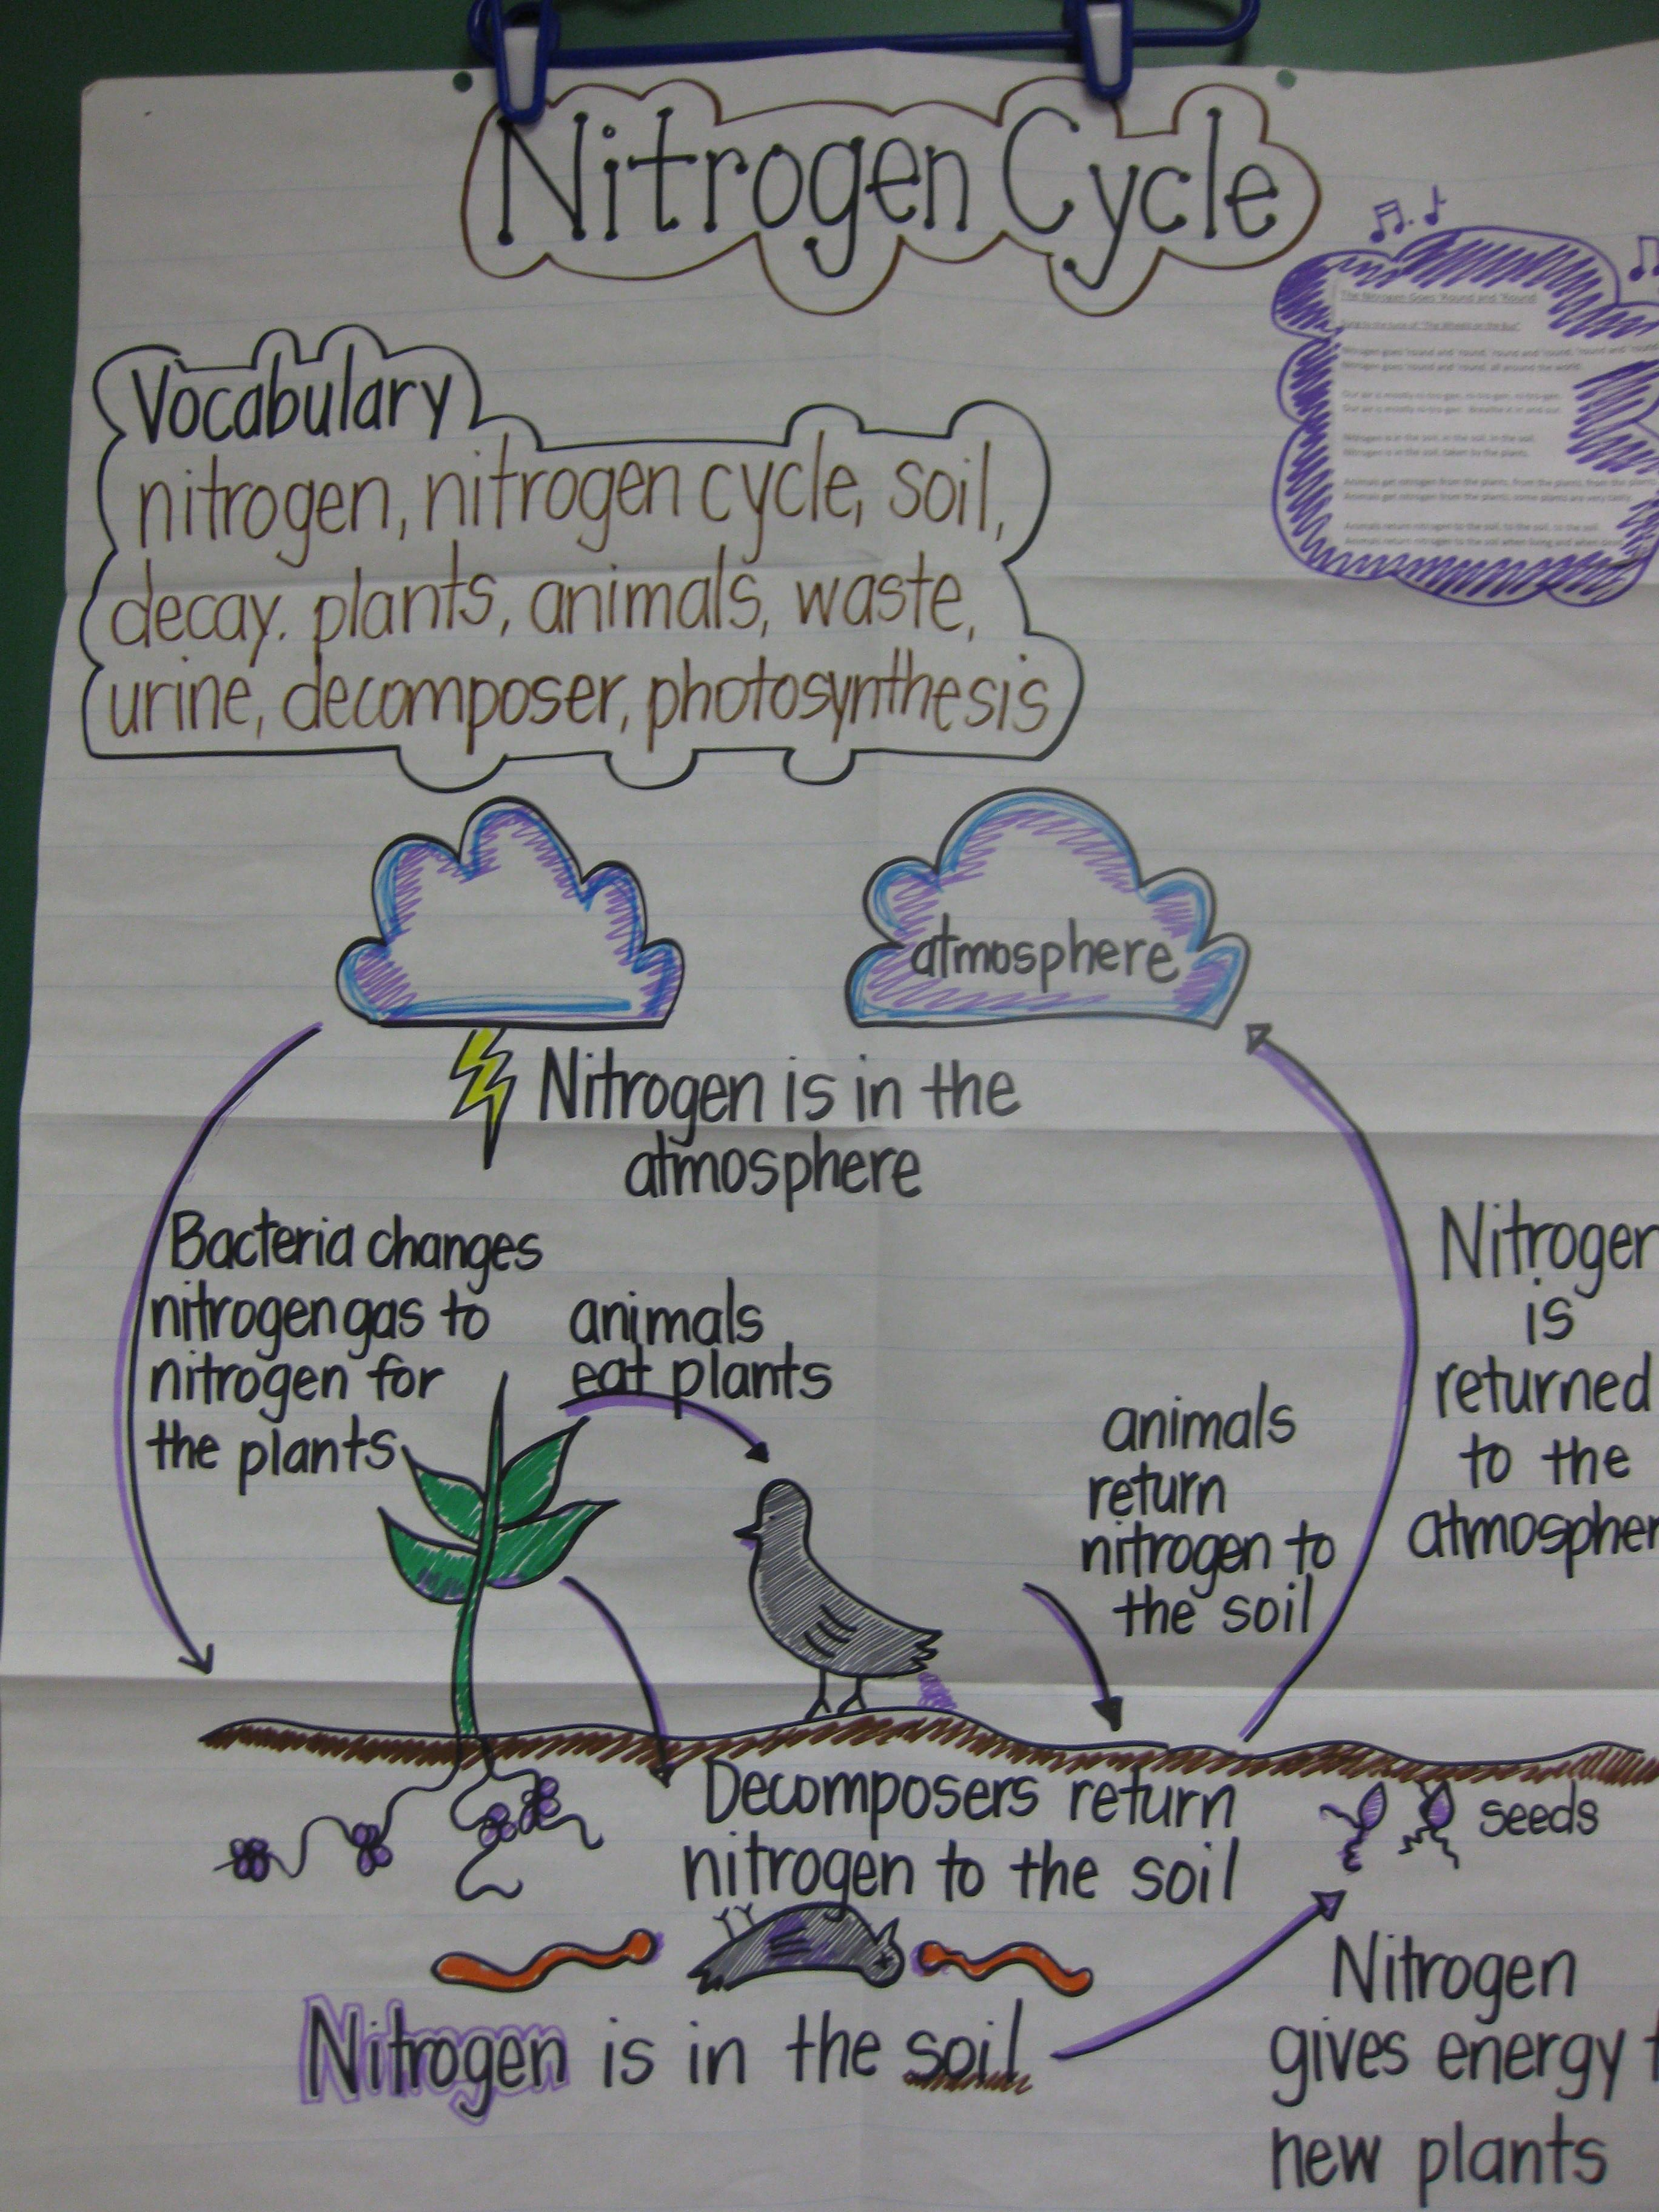 staar review anchor chart i make this one to review the nitrogen cycle with students before the 5th grade science staar test [ 2736 x 3648 Pixel ]